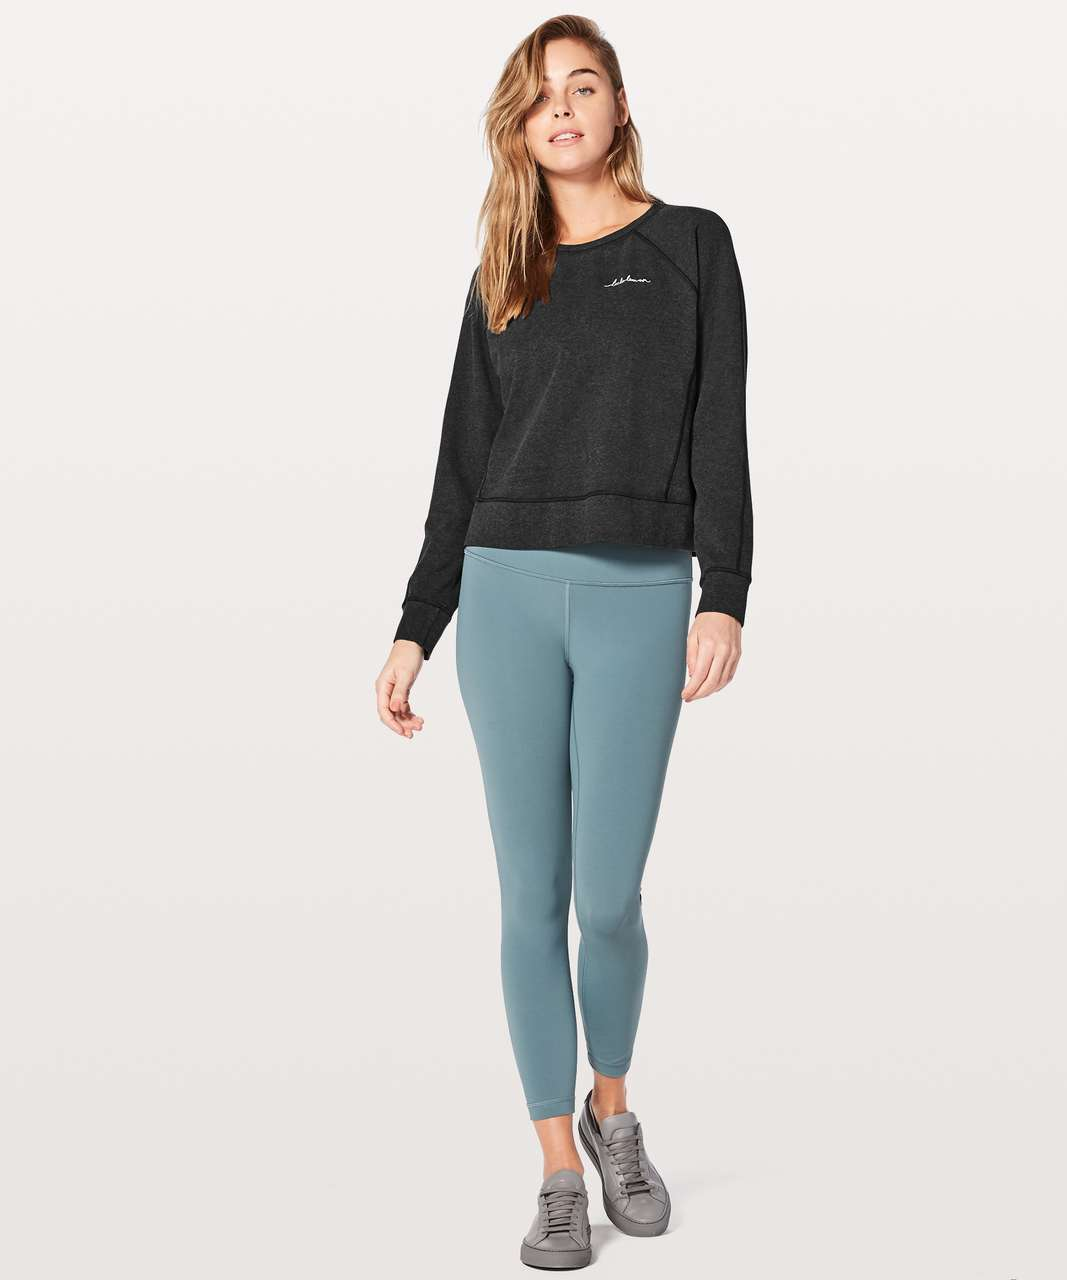 Lululemon Loop Back Crew *Expression - Heathered Black